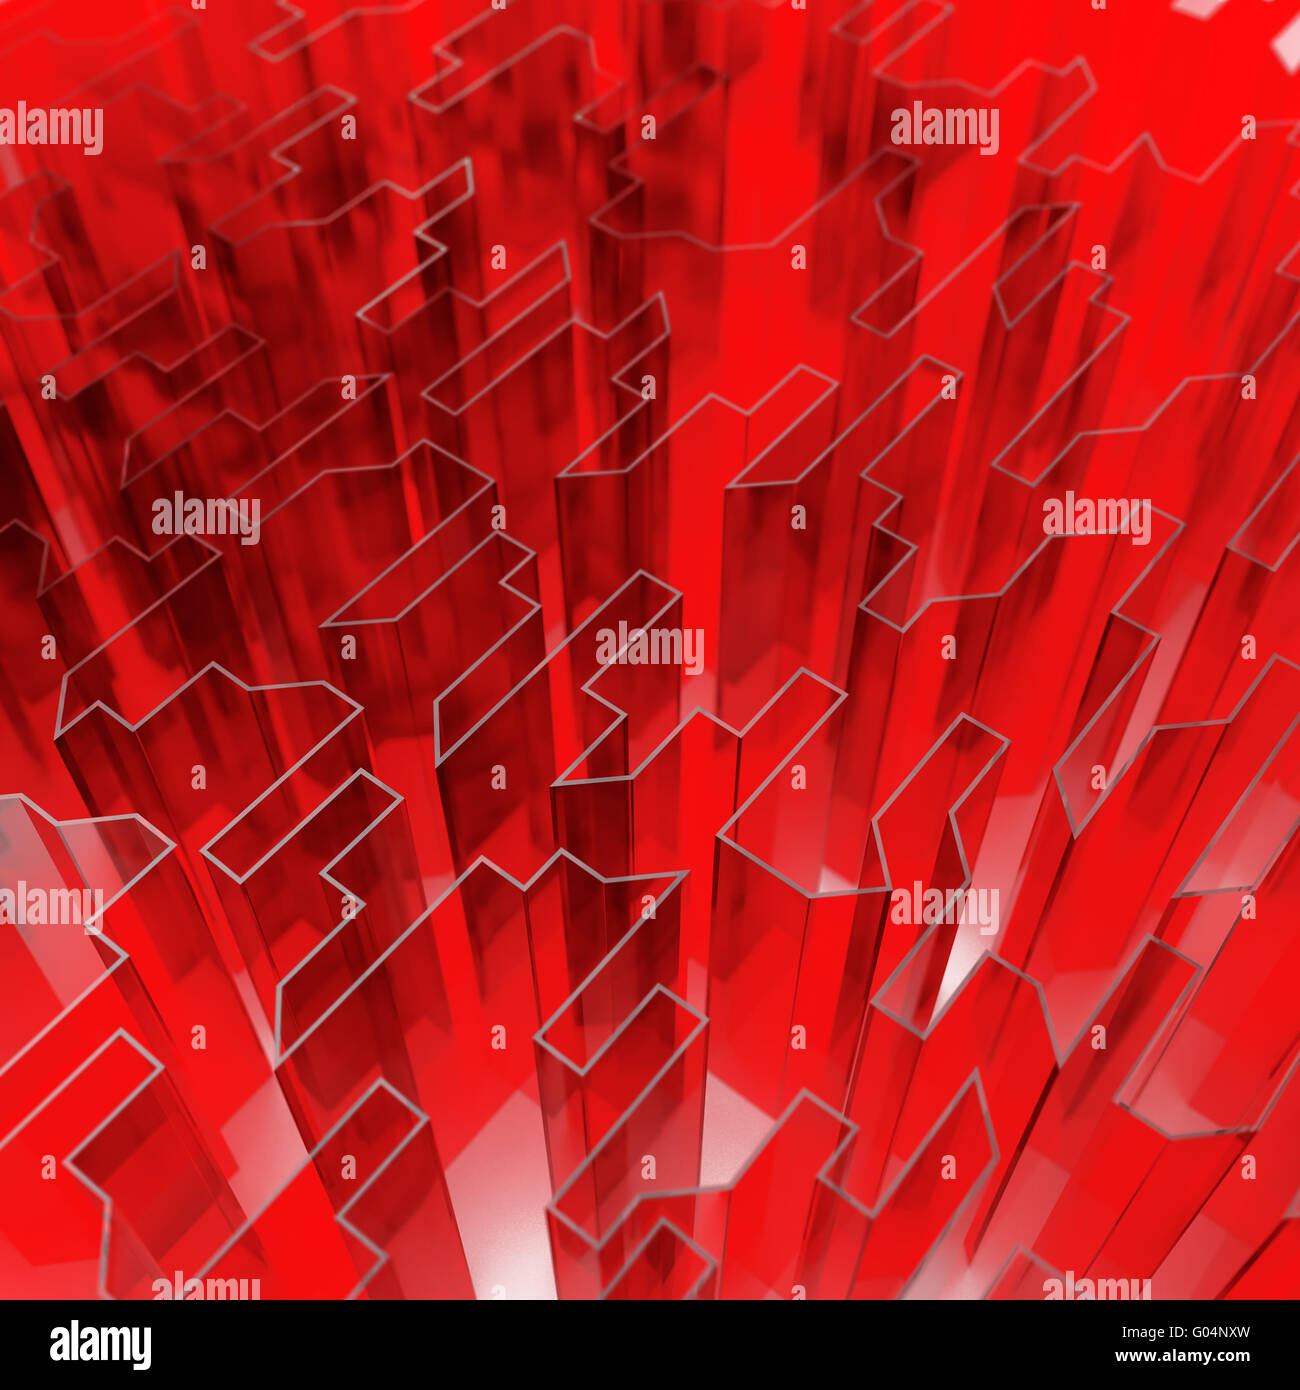 red glass acute angled abstraction as a background - Stock Image